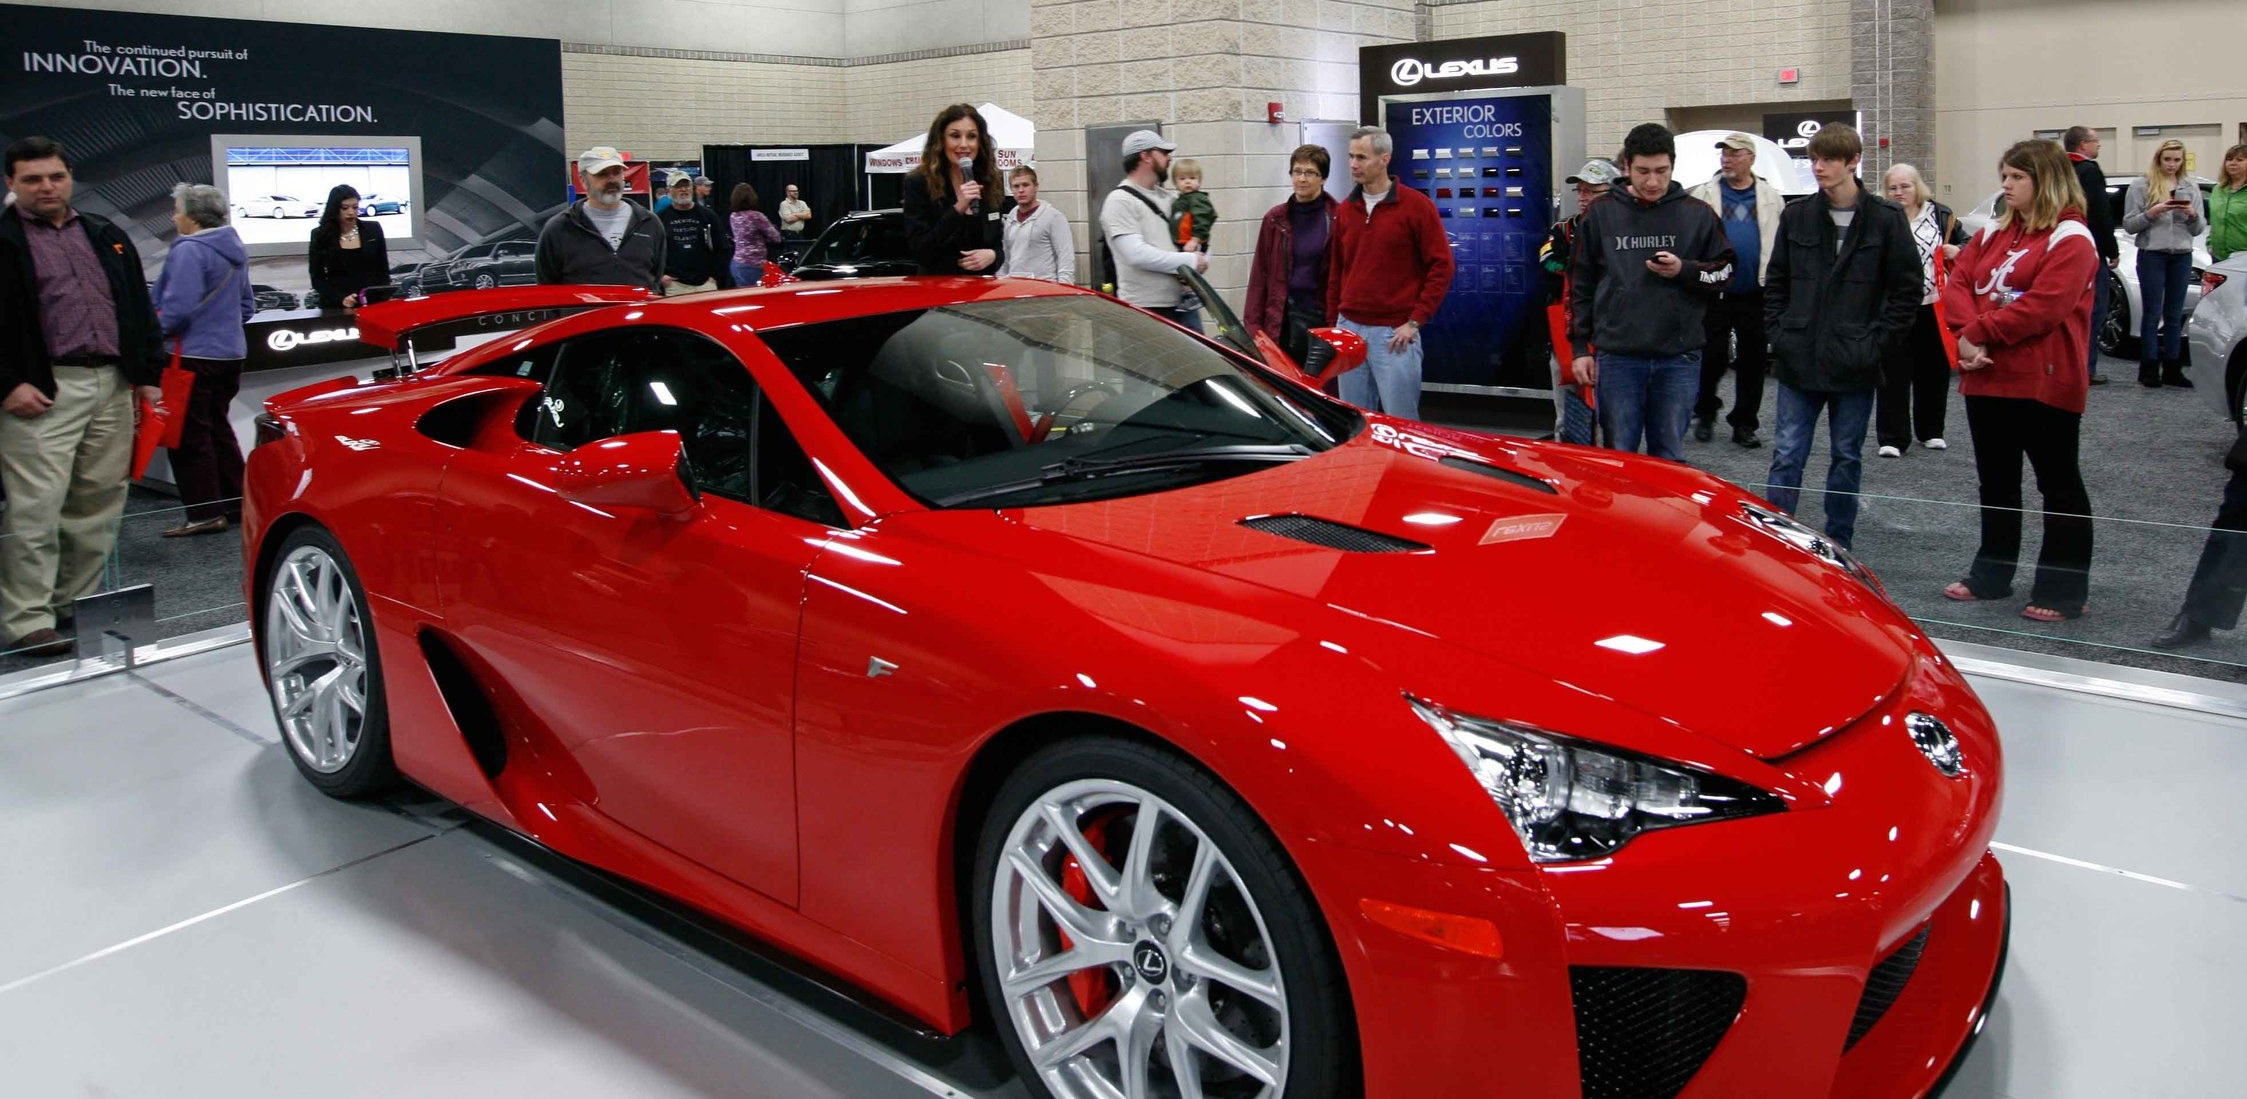 Knox News Auto Show  February 22 - 24, 2019  Knoxville Convention Center